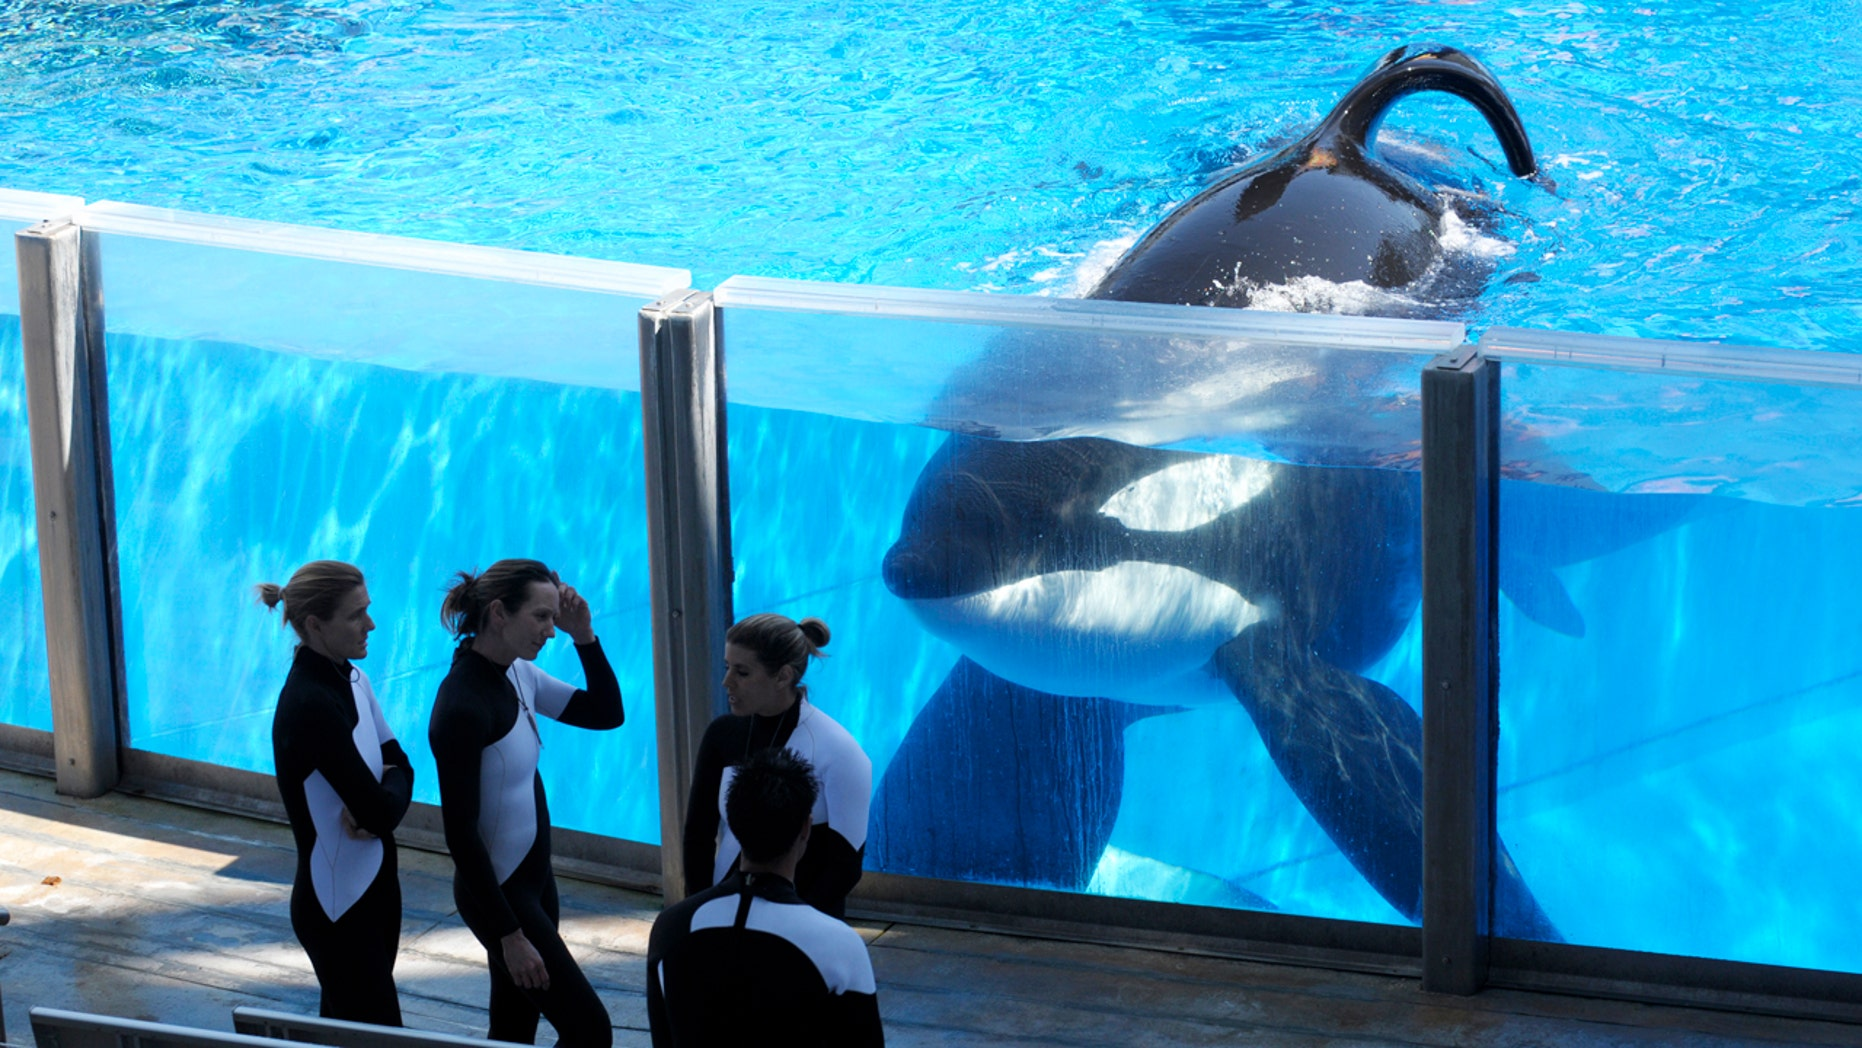 In 2011 file photo orca whale Tilikum, right, watches as SeaWorld Orlando trainers take a break during a training session at the theme park's Shamu Stadium in Orlando, Fla.